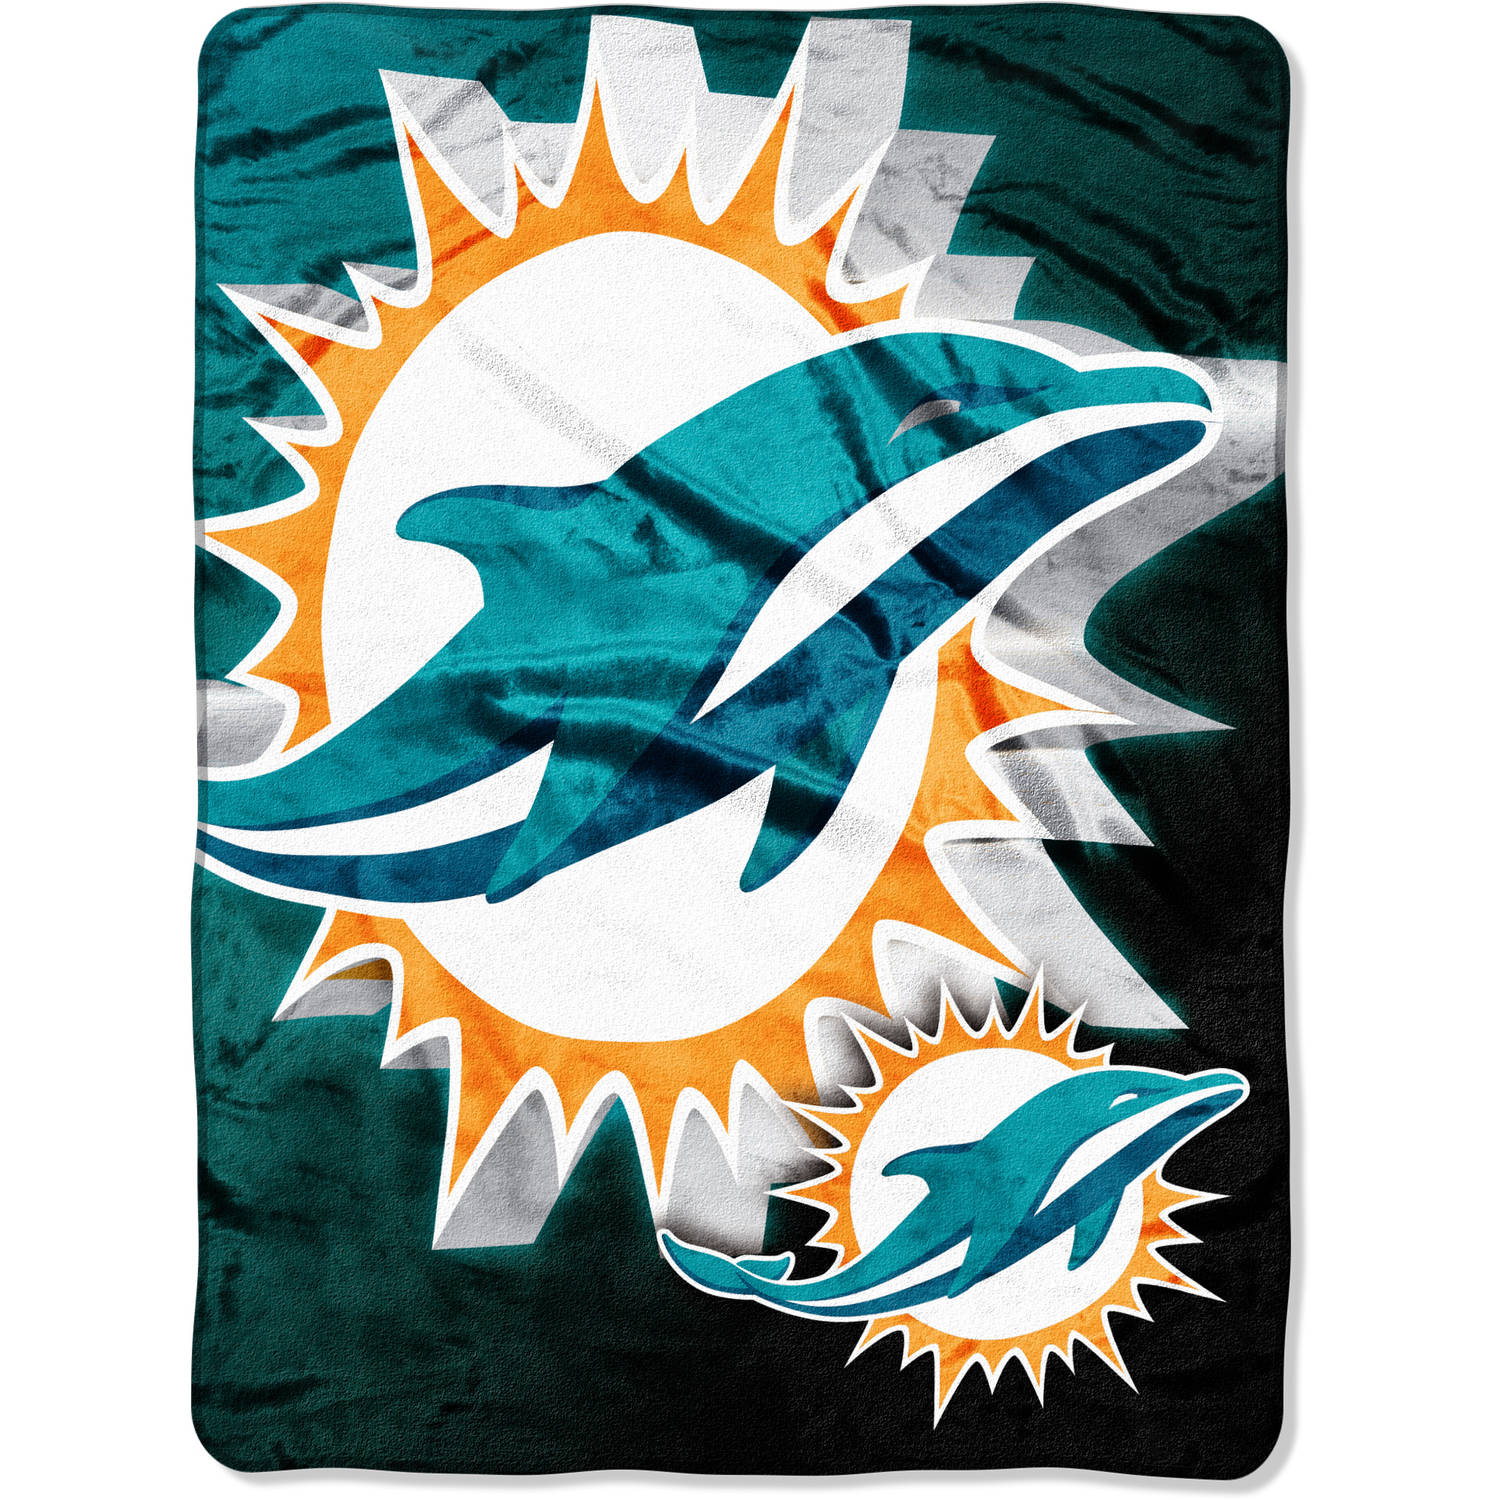 "NFL Miami Dolphins 60"" x 80"" Oversized Micro Raschel Throw"